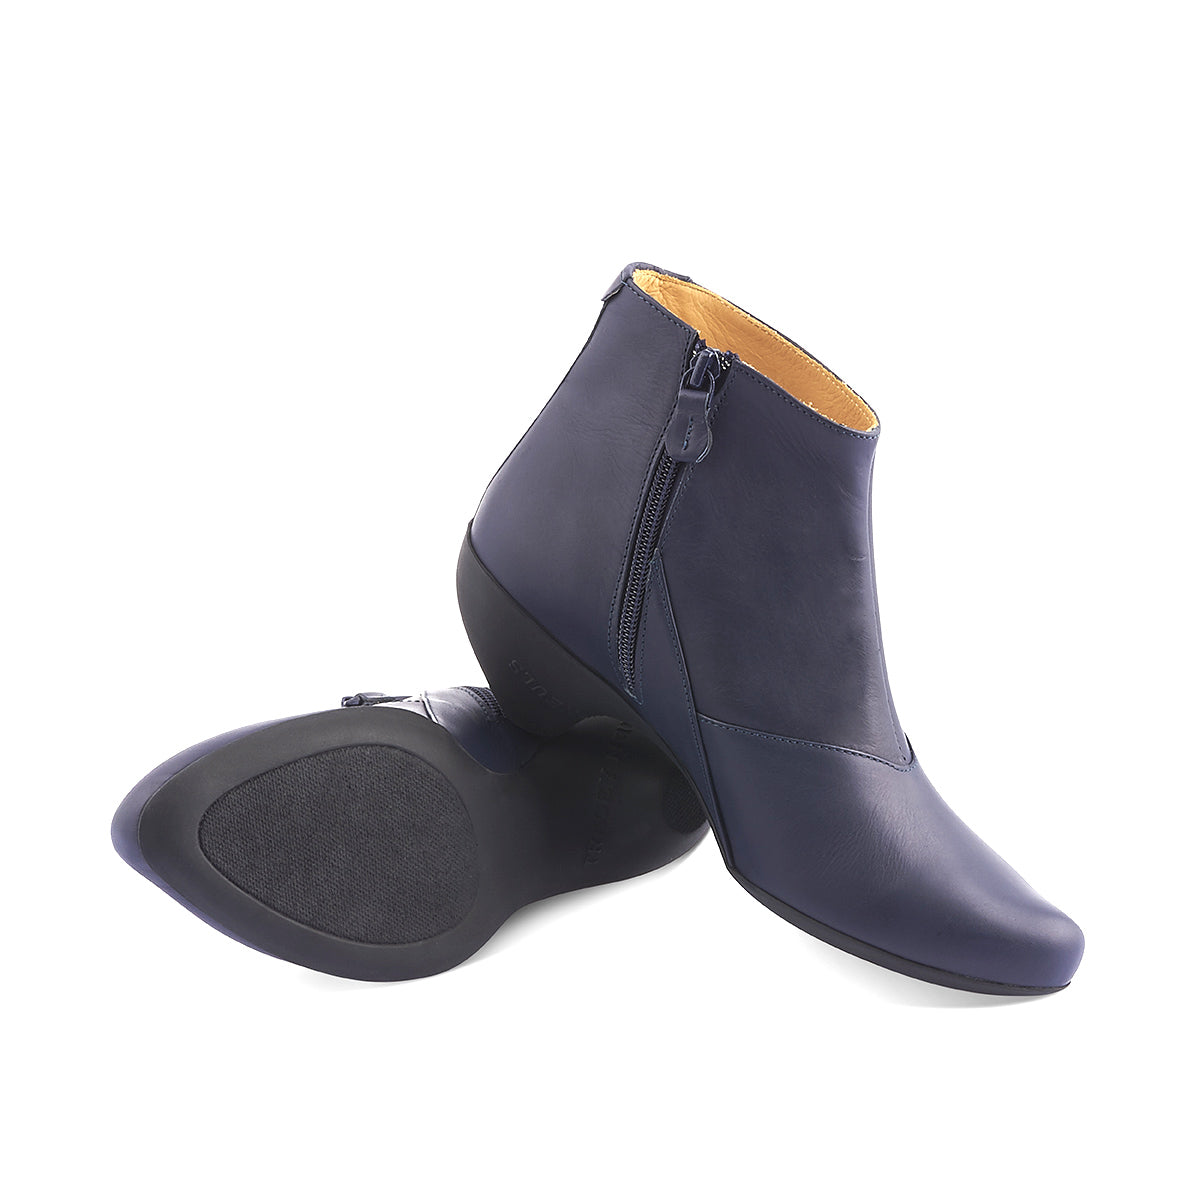 With a stormy navy leather upper, Ginger is a versatile ankle boot from the talented Tracey Neuls. The soft upper features a subtle inner zip, fine angular seams and an exquisitely comfy contoured rubber sole and signature sculpted toe shape.